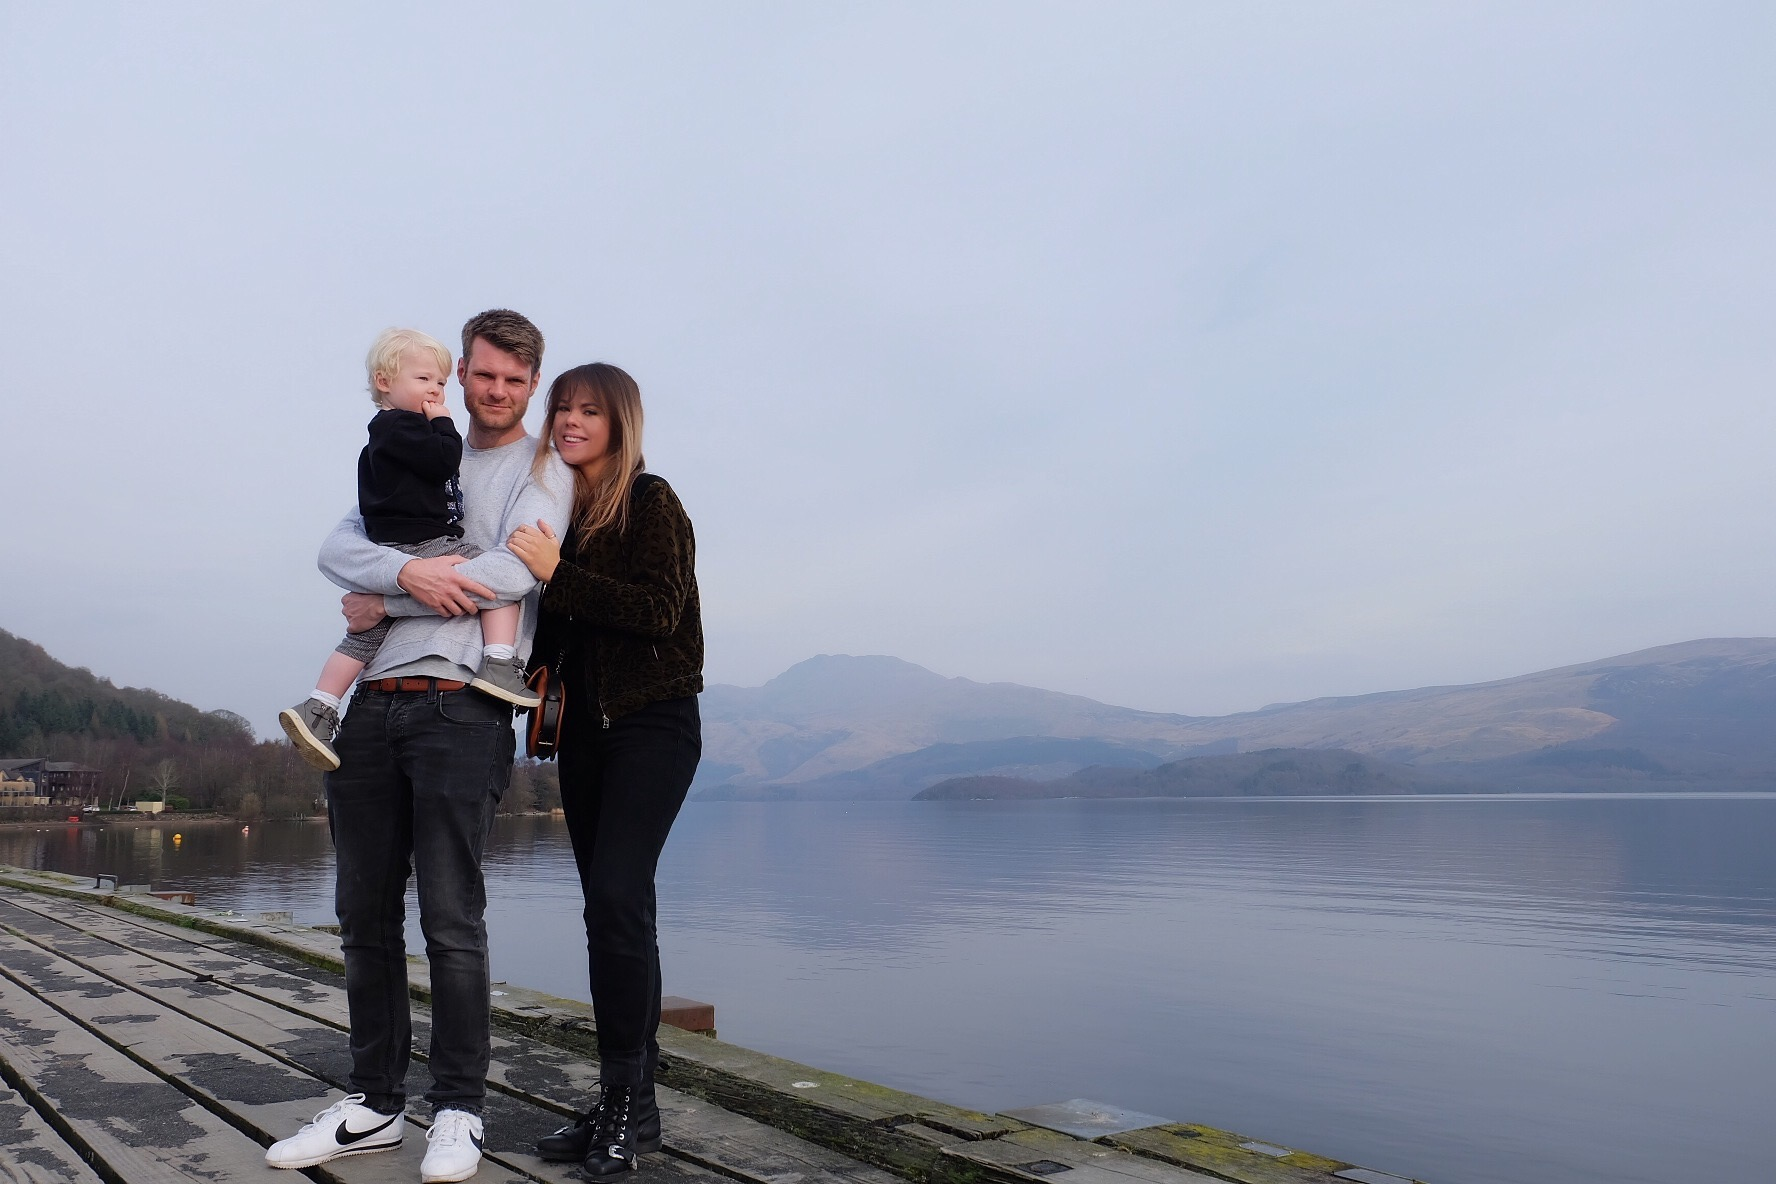 A little Nixey family holiday snap on the banks of the Loch!